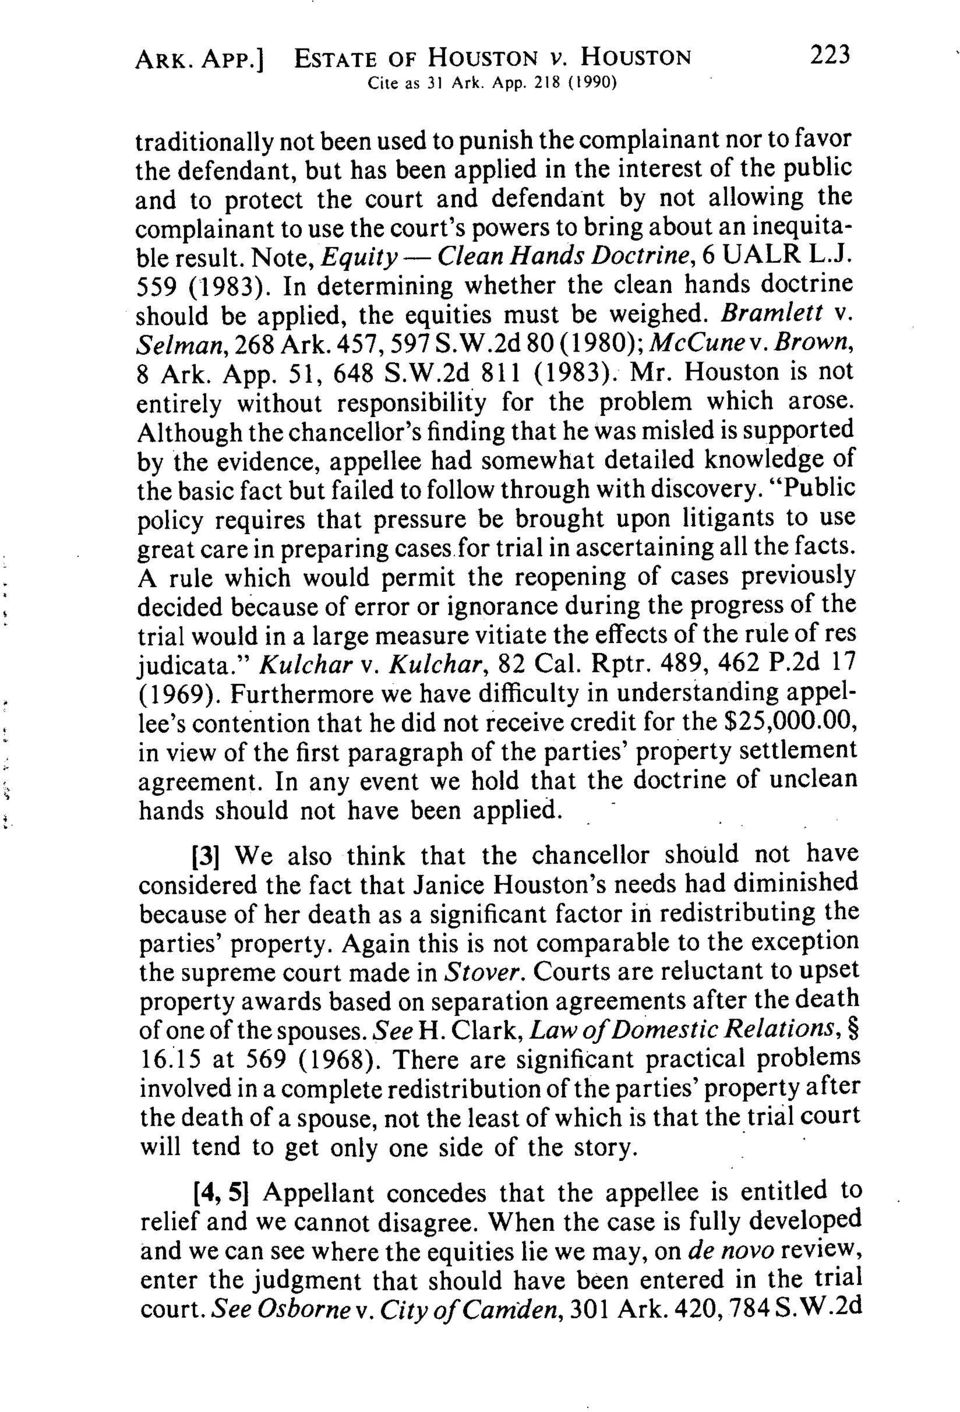 the complainant to use the court's powers to bring about an inequitable result. Note, Equity Clean Hands Doctrine, 6 UALR L.J. 559 (1983).